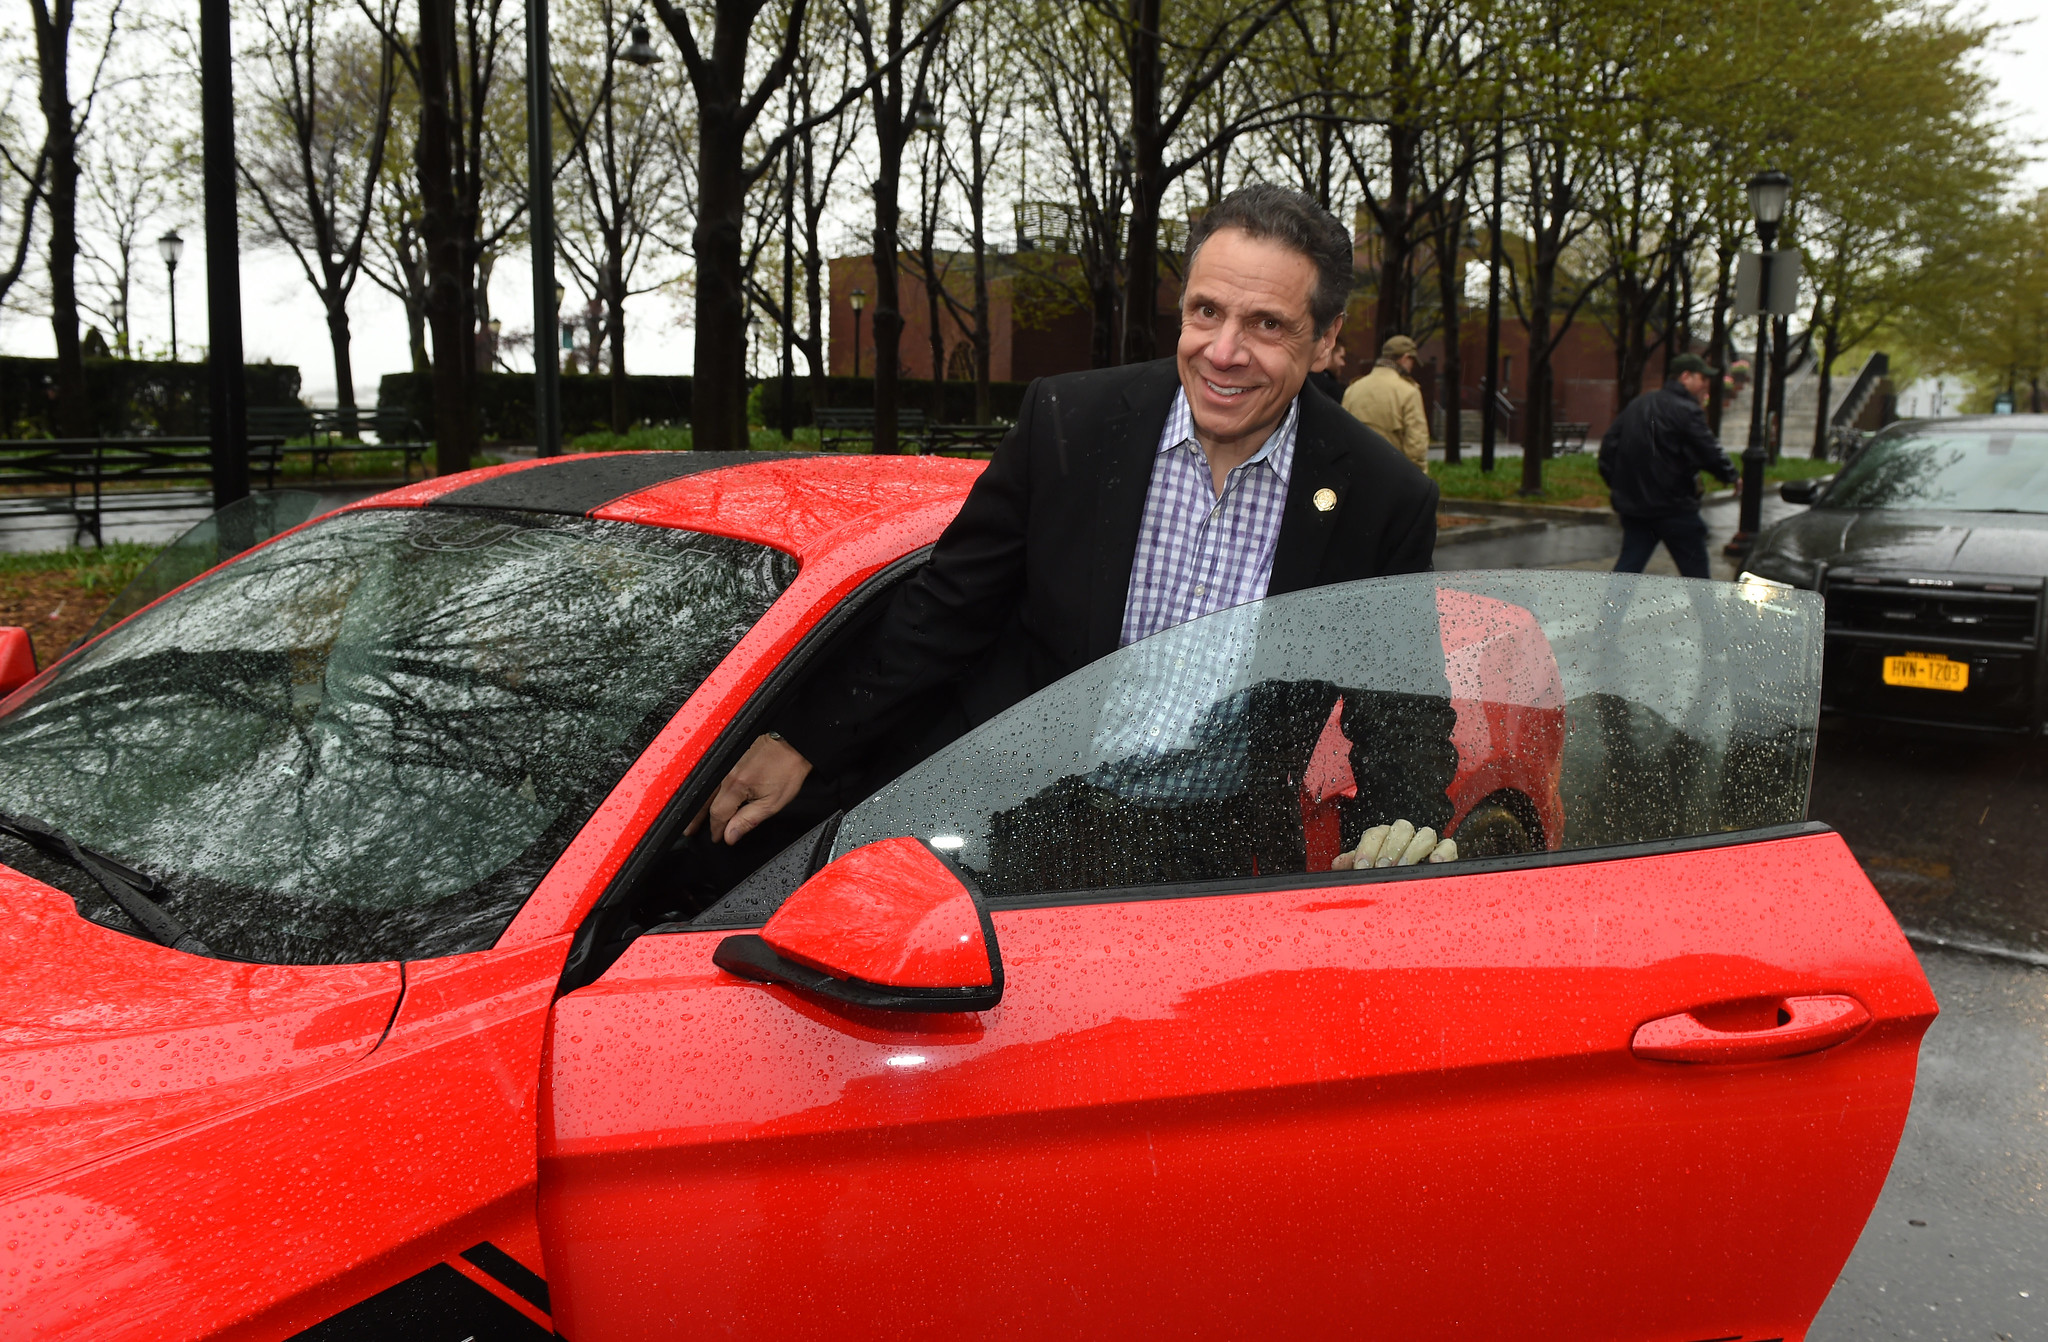 Vroom vroom.  Kevin P. Coughlin/Office of Governor Andrew M. Cuomo